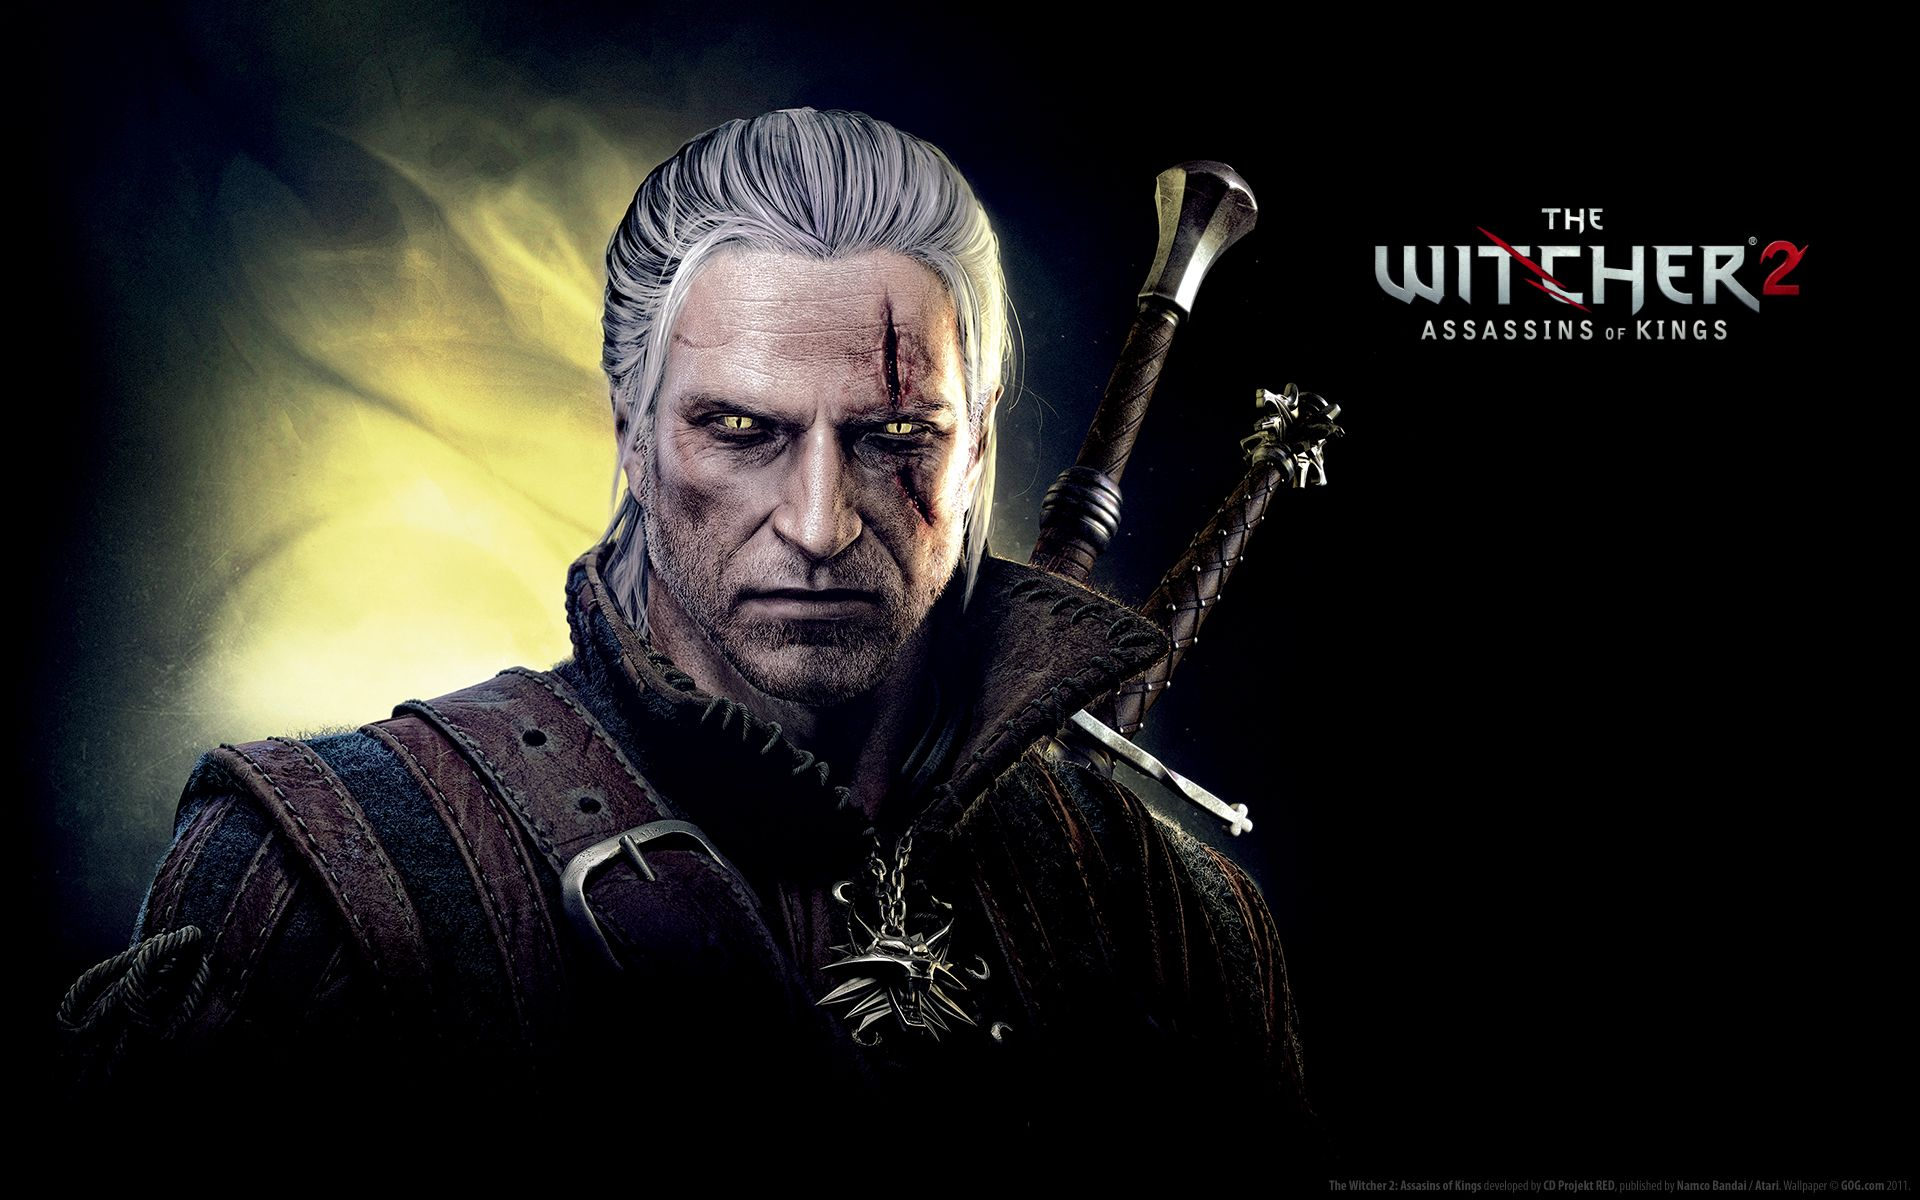 The Witcher 2 Assassins of Kings The witcher, Witcher 2